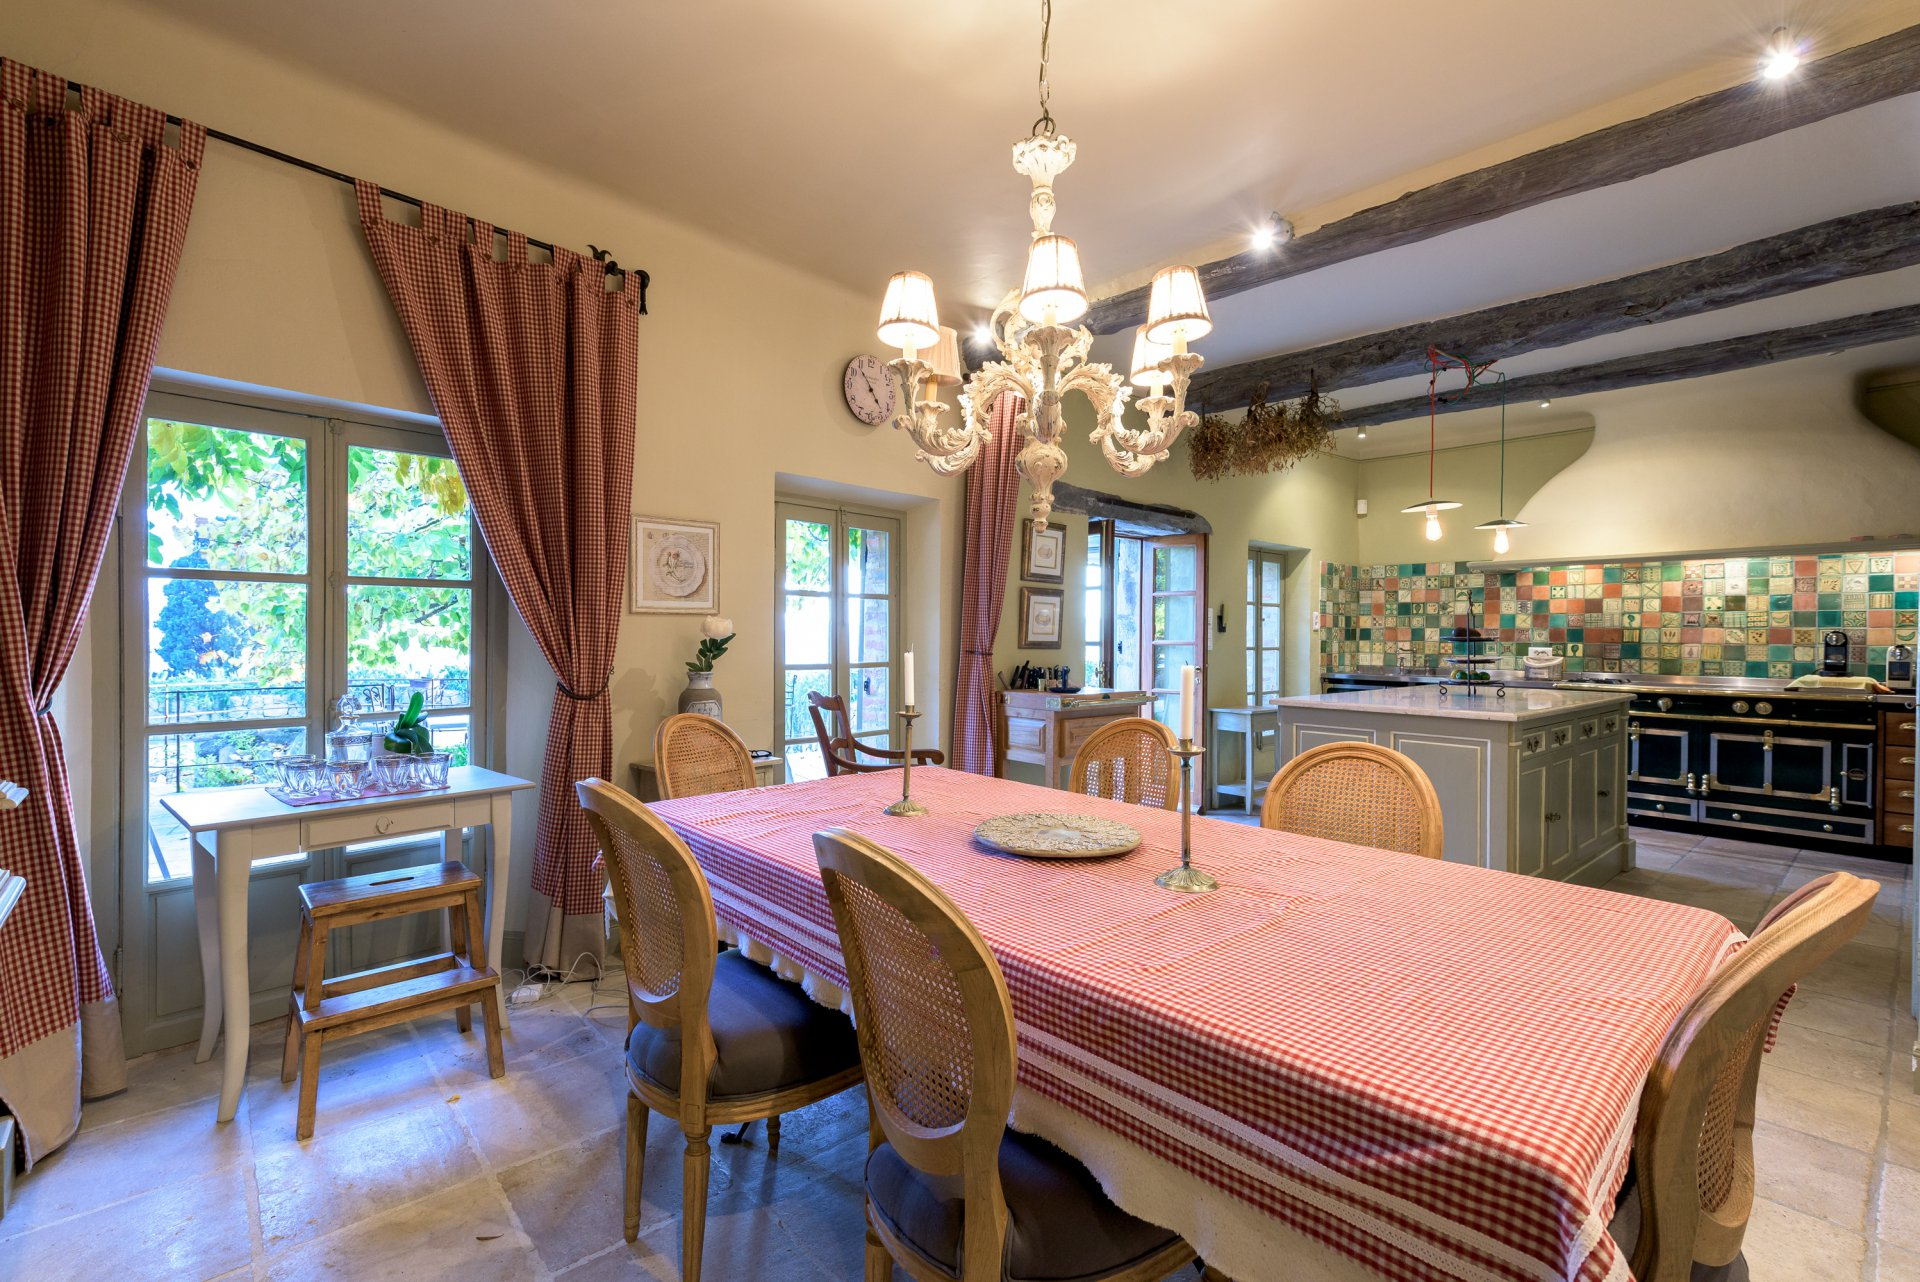 A 15th Century 11 Bedroom Picturesque Mansion On The French Riviera!